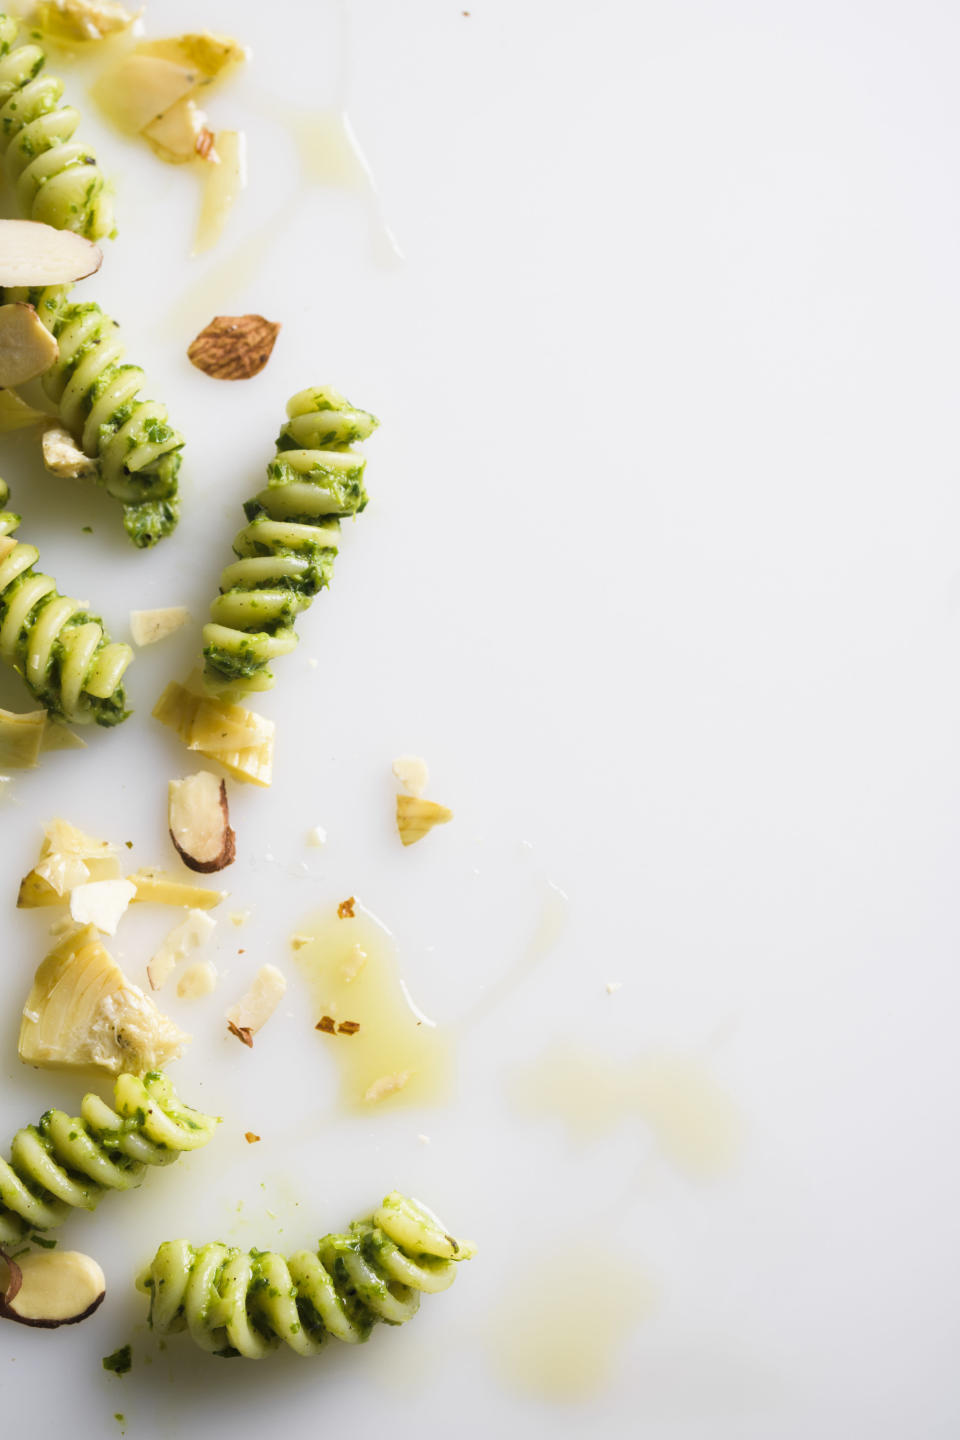 This image released by Milk Street shows a recipe for fusilli with fresh herbs and artichokes. (Milk Street via AP)